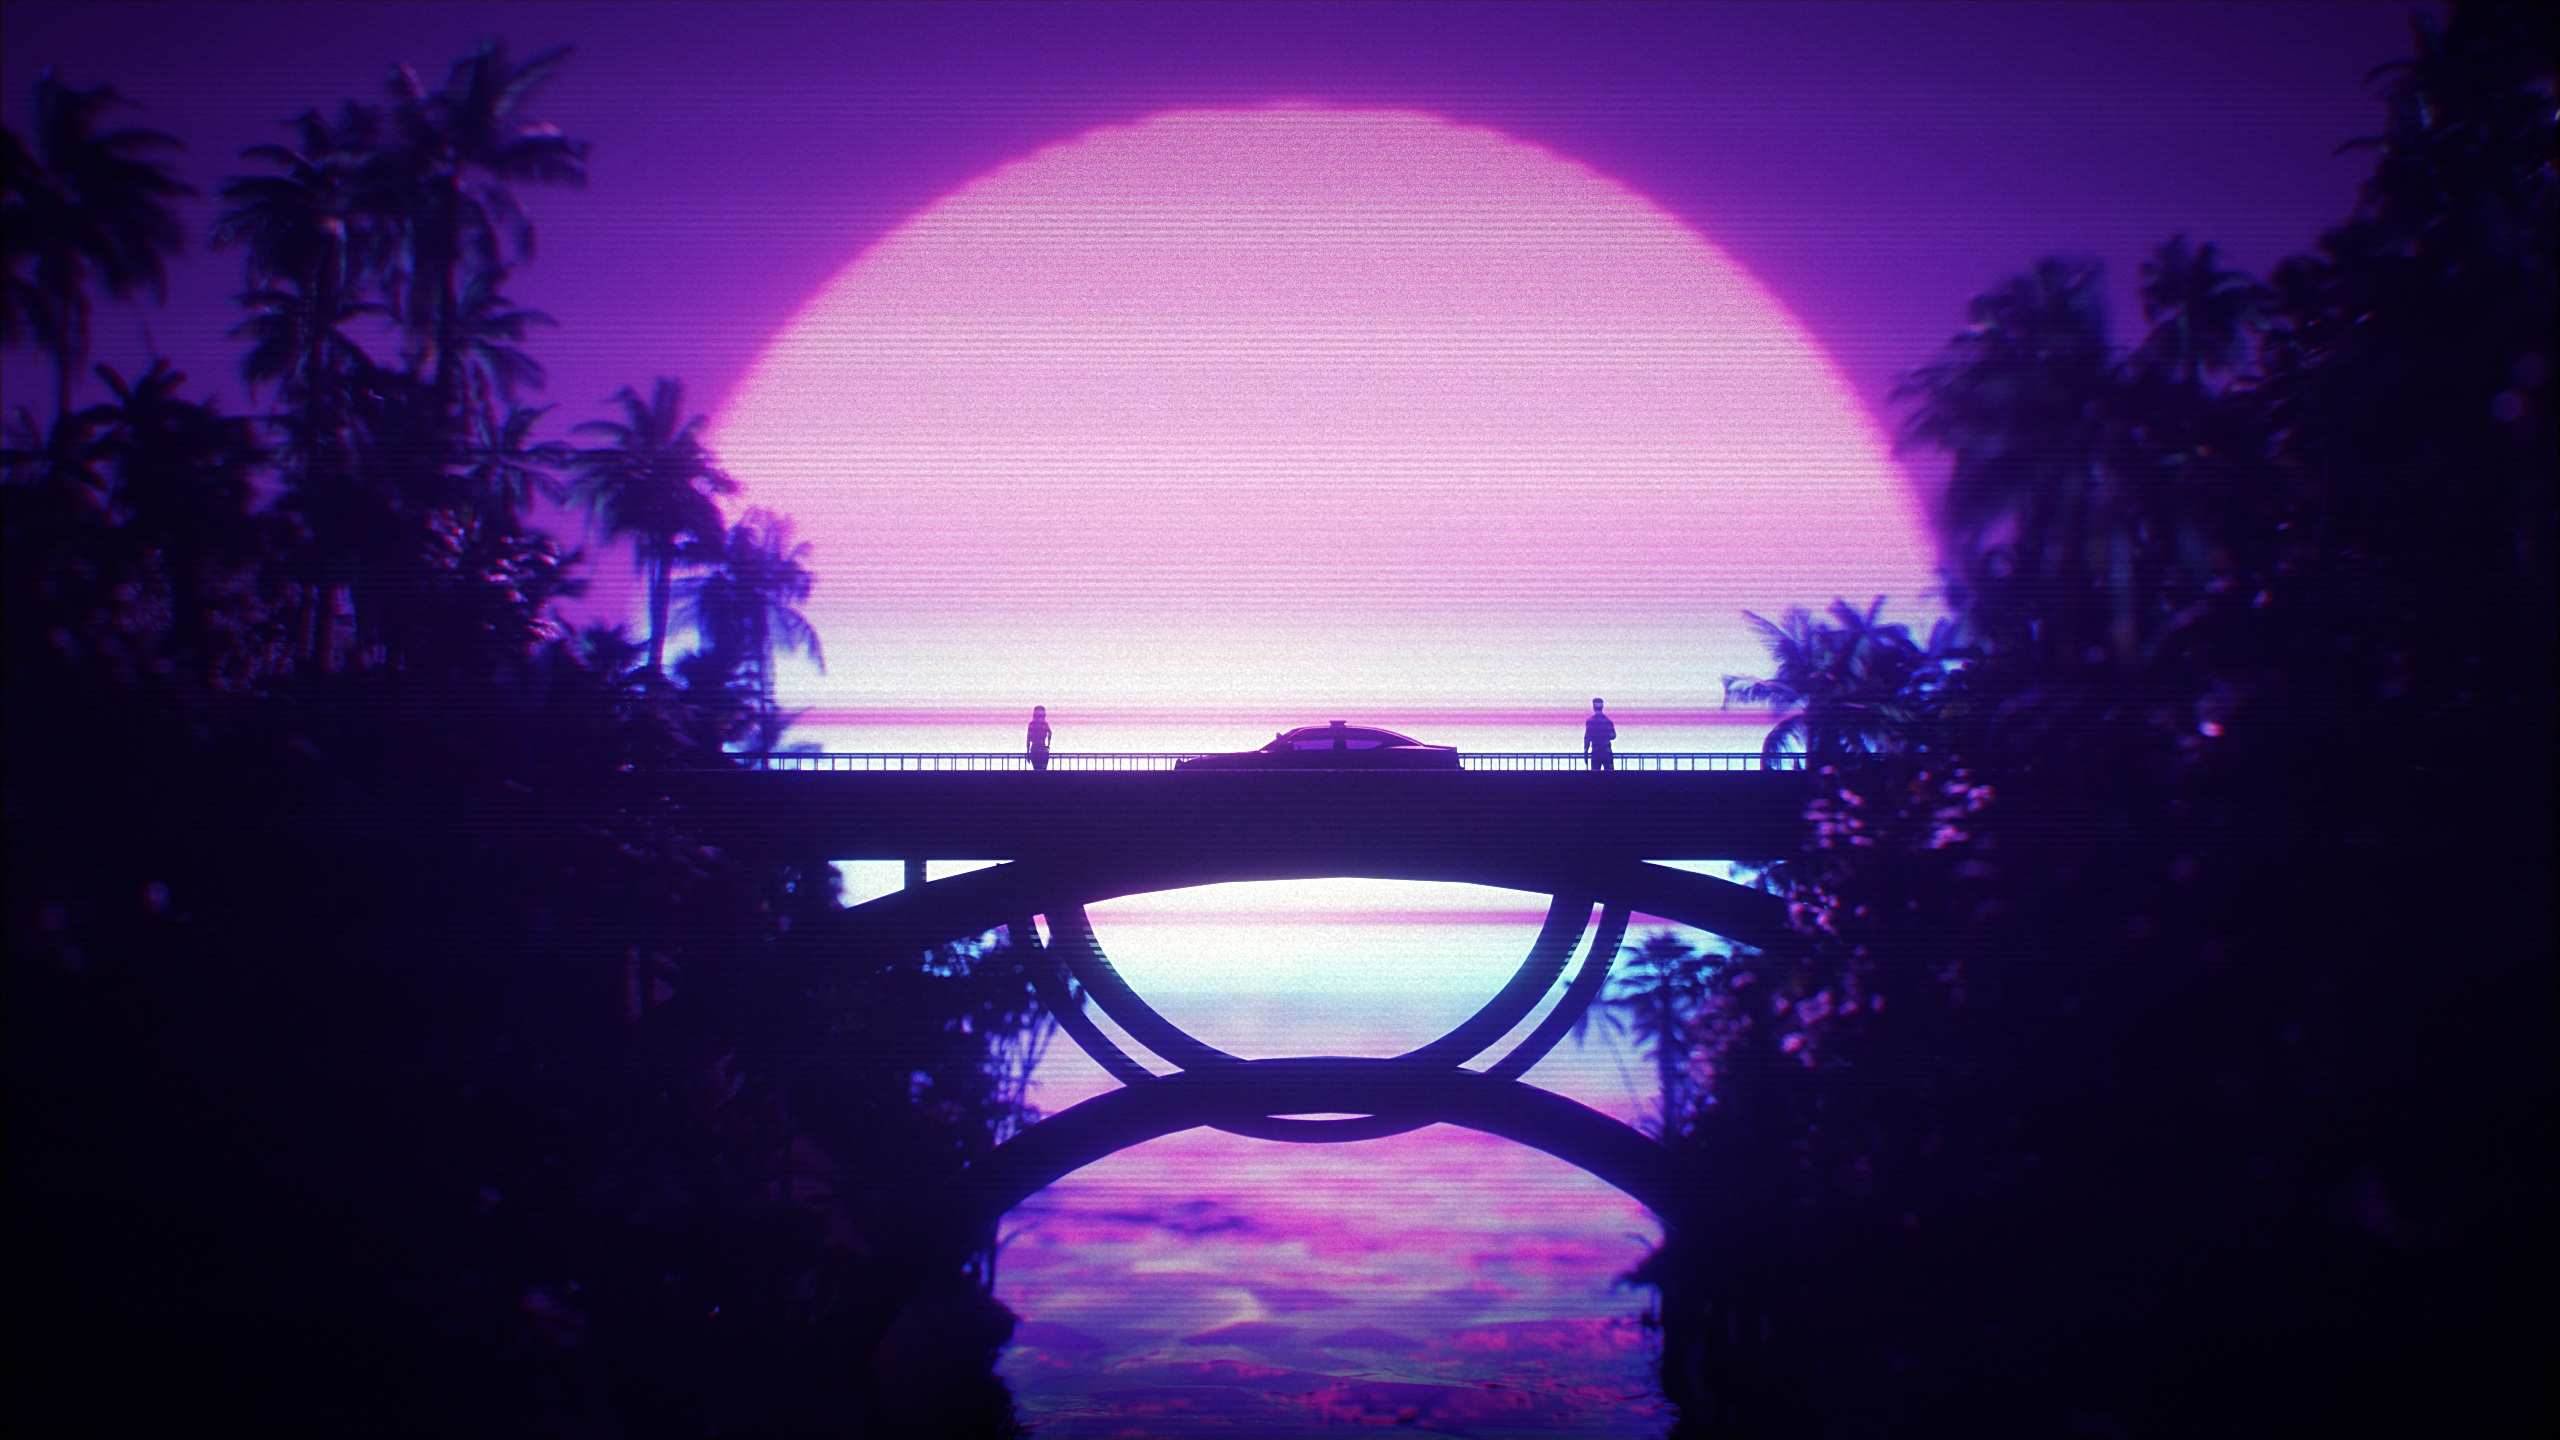 General 2560x1440 digital digital art artwork illustration Retrowave vaporwave synthwave dark Sun dusk sunset silhouette people palm trees bridge car vehicle transport purple pink purple background 1980s 80s nature landscape neon